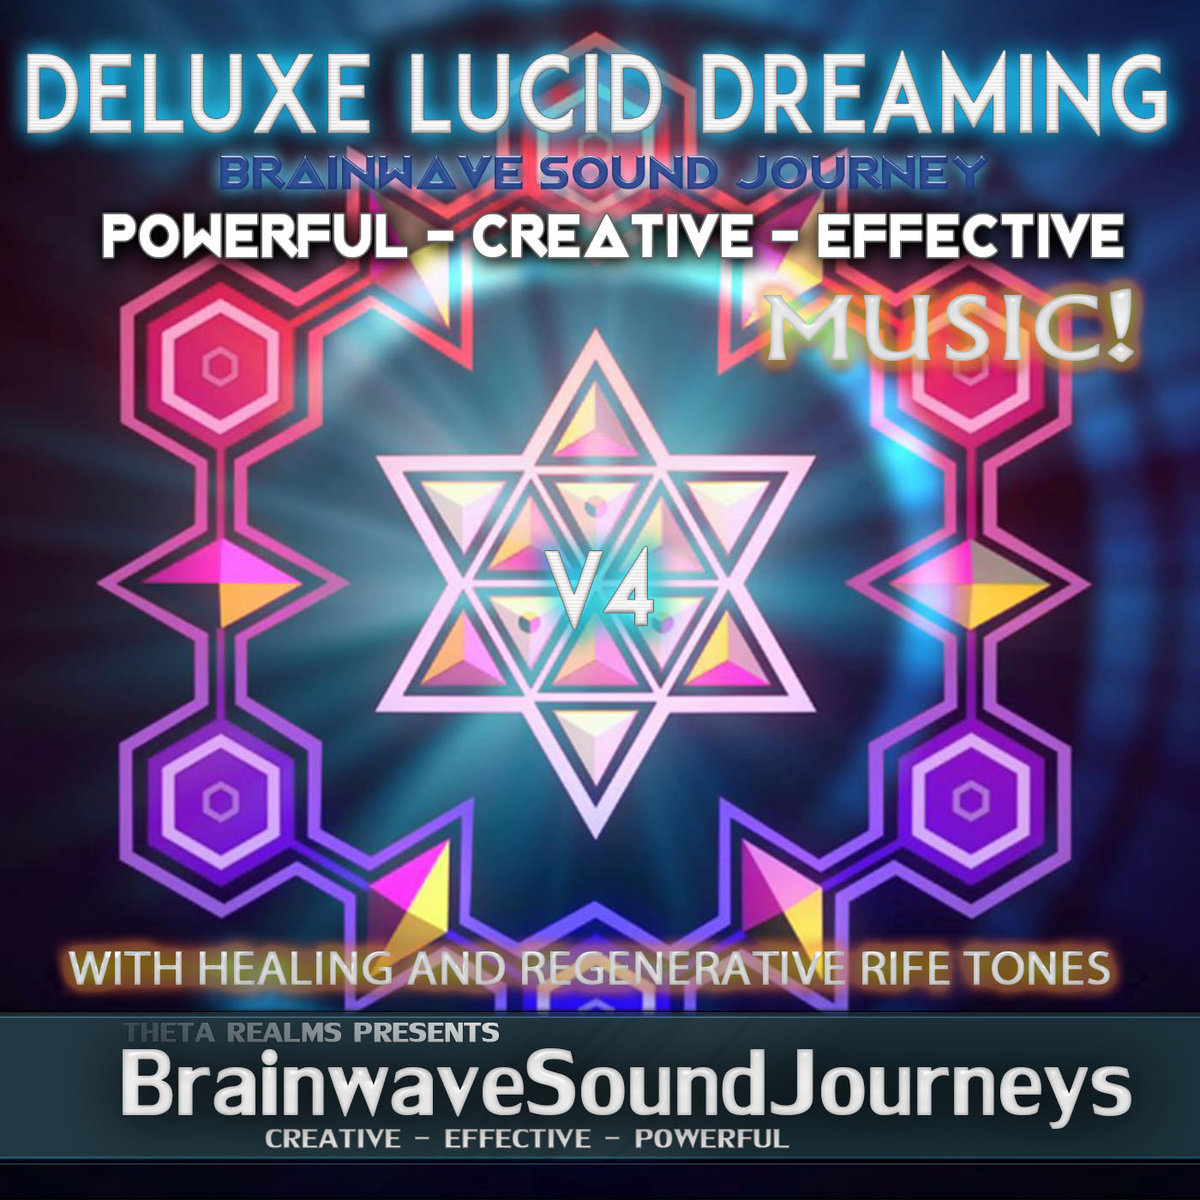 Deluxe Lucid Dreaming - V4 + Regeneration And Healing